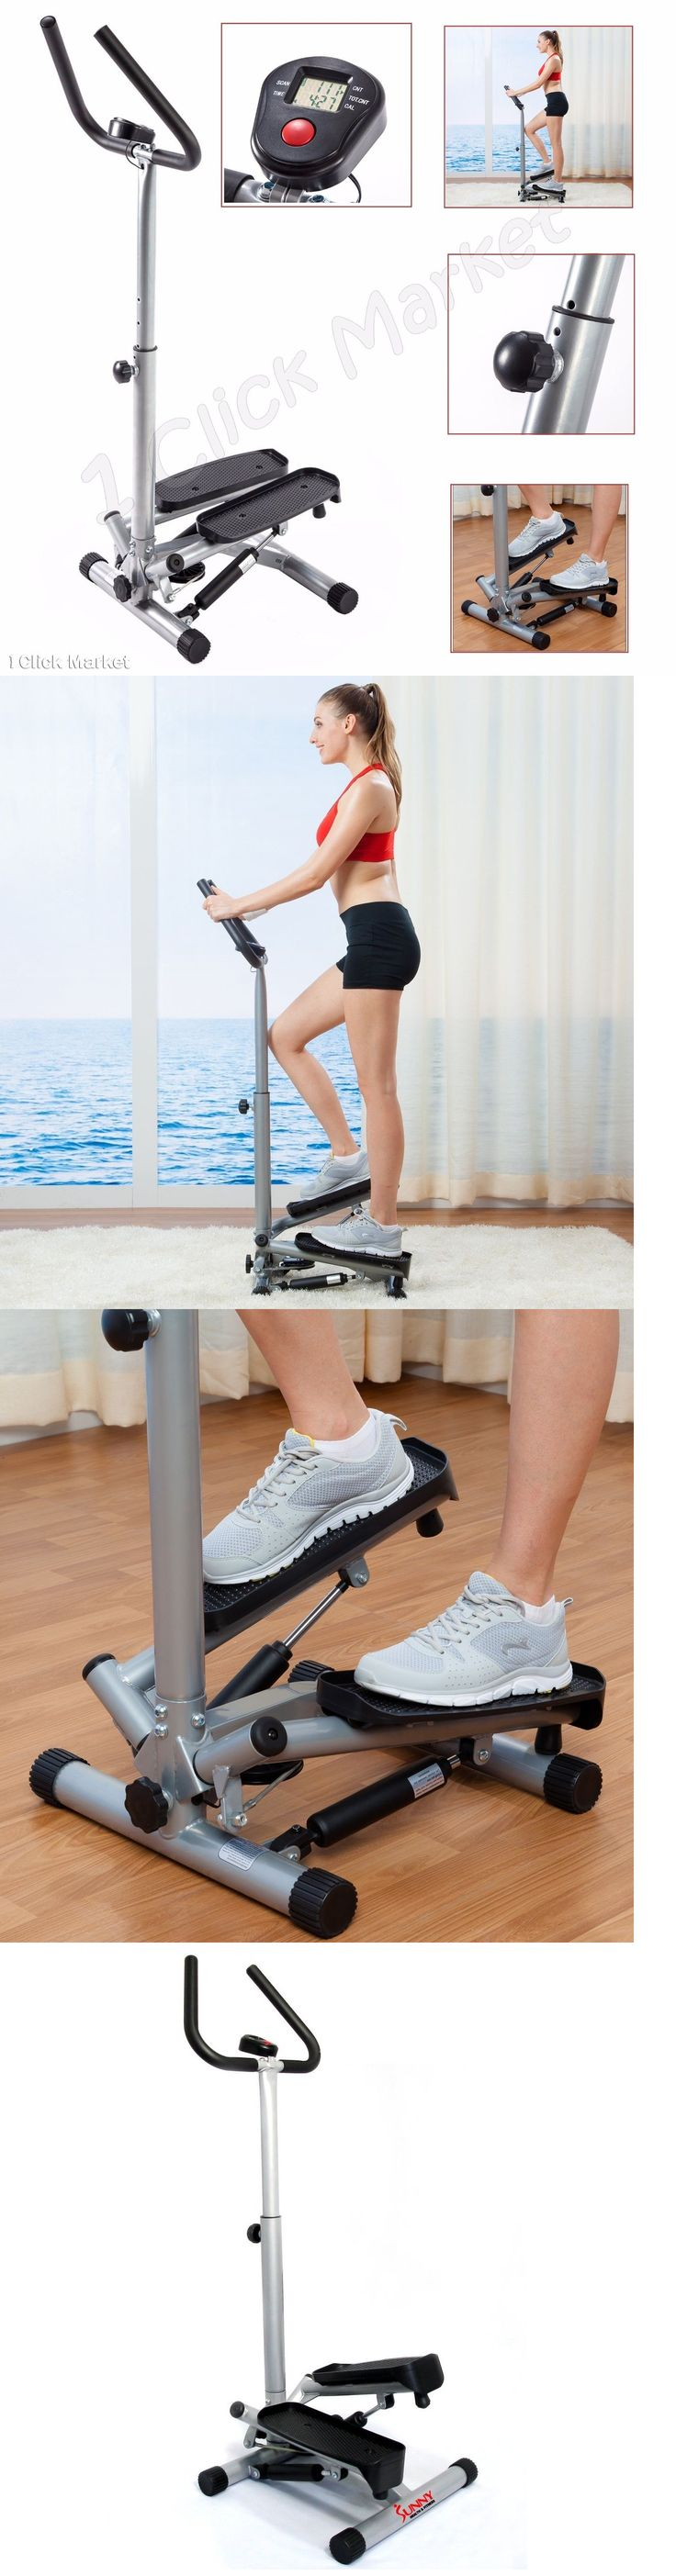 Stair Machines and Steppers 28062: Stair Stepper Climber Air Step Aerobic Fitness Cardio Workout Exercise Machine BUY IT NOW ONLY: $78.3